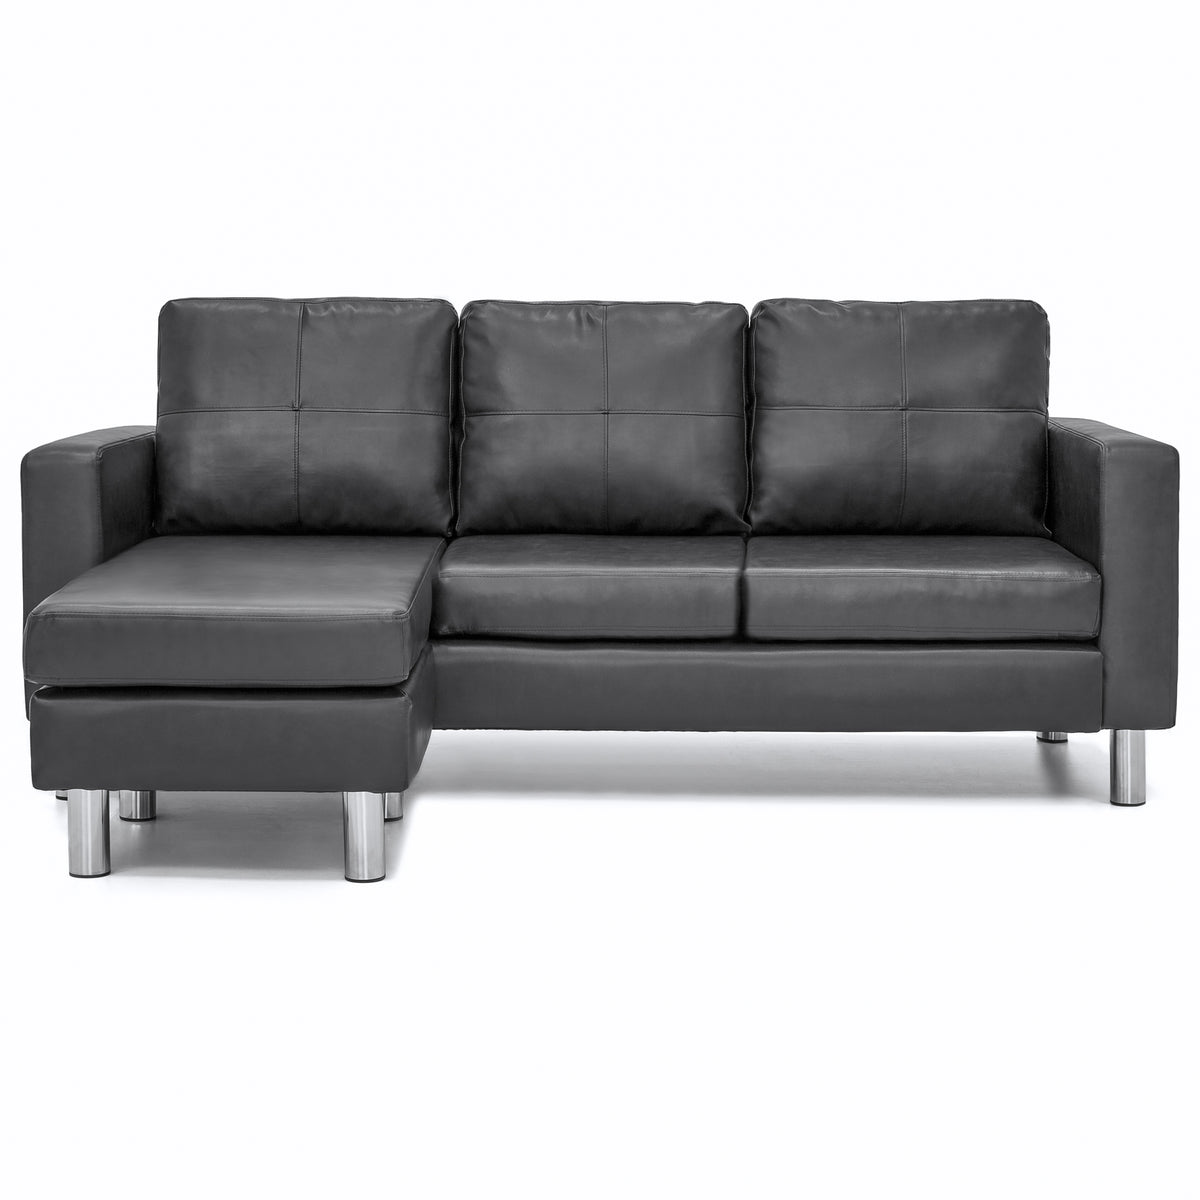 Leather L Shape Sectional Sofa Couch W Reversible Chaise